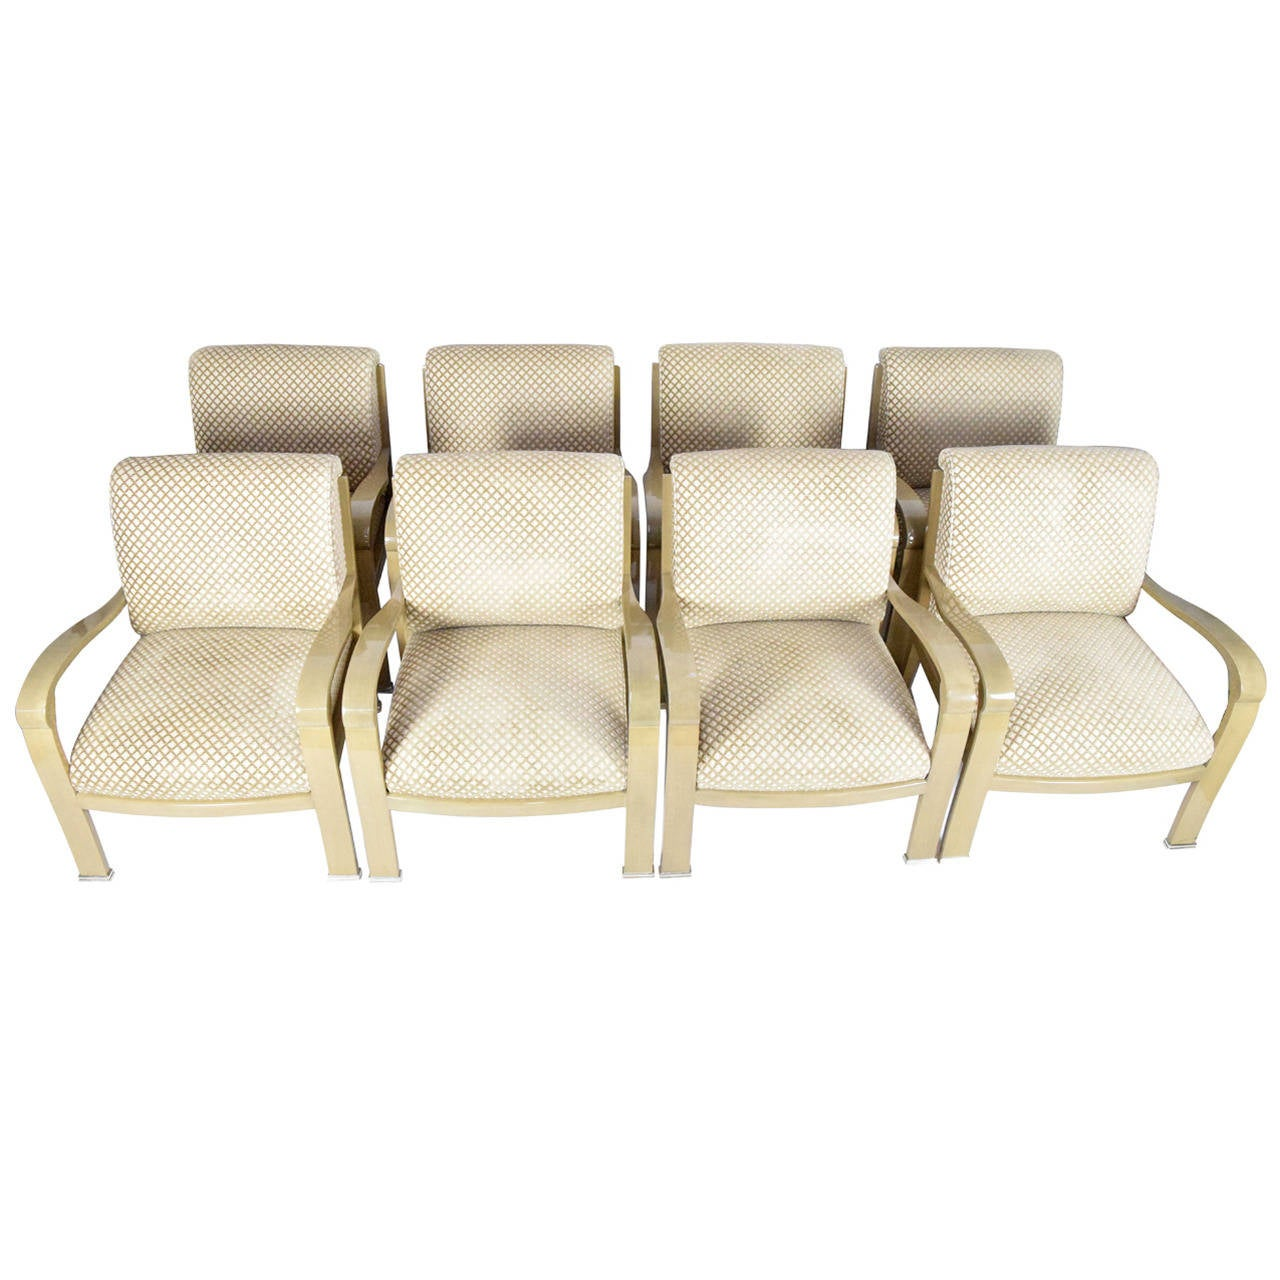 J. Robert Scott Salon Deco Lounge Chairs By Sally Sirkin